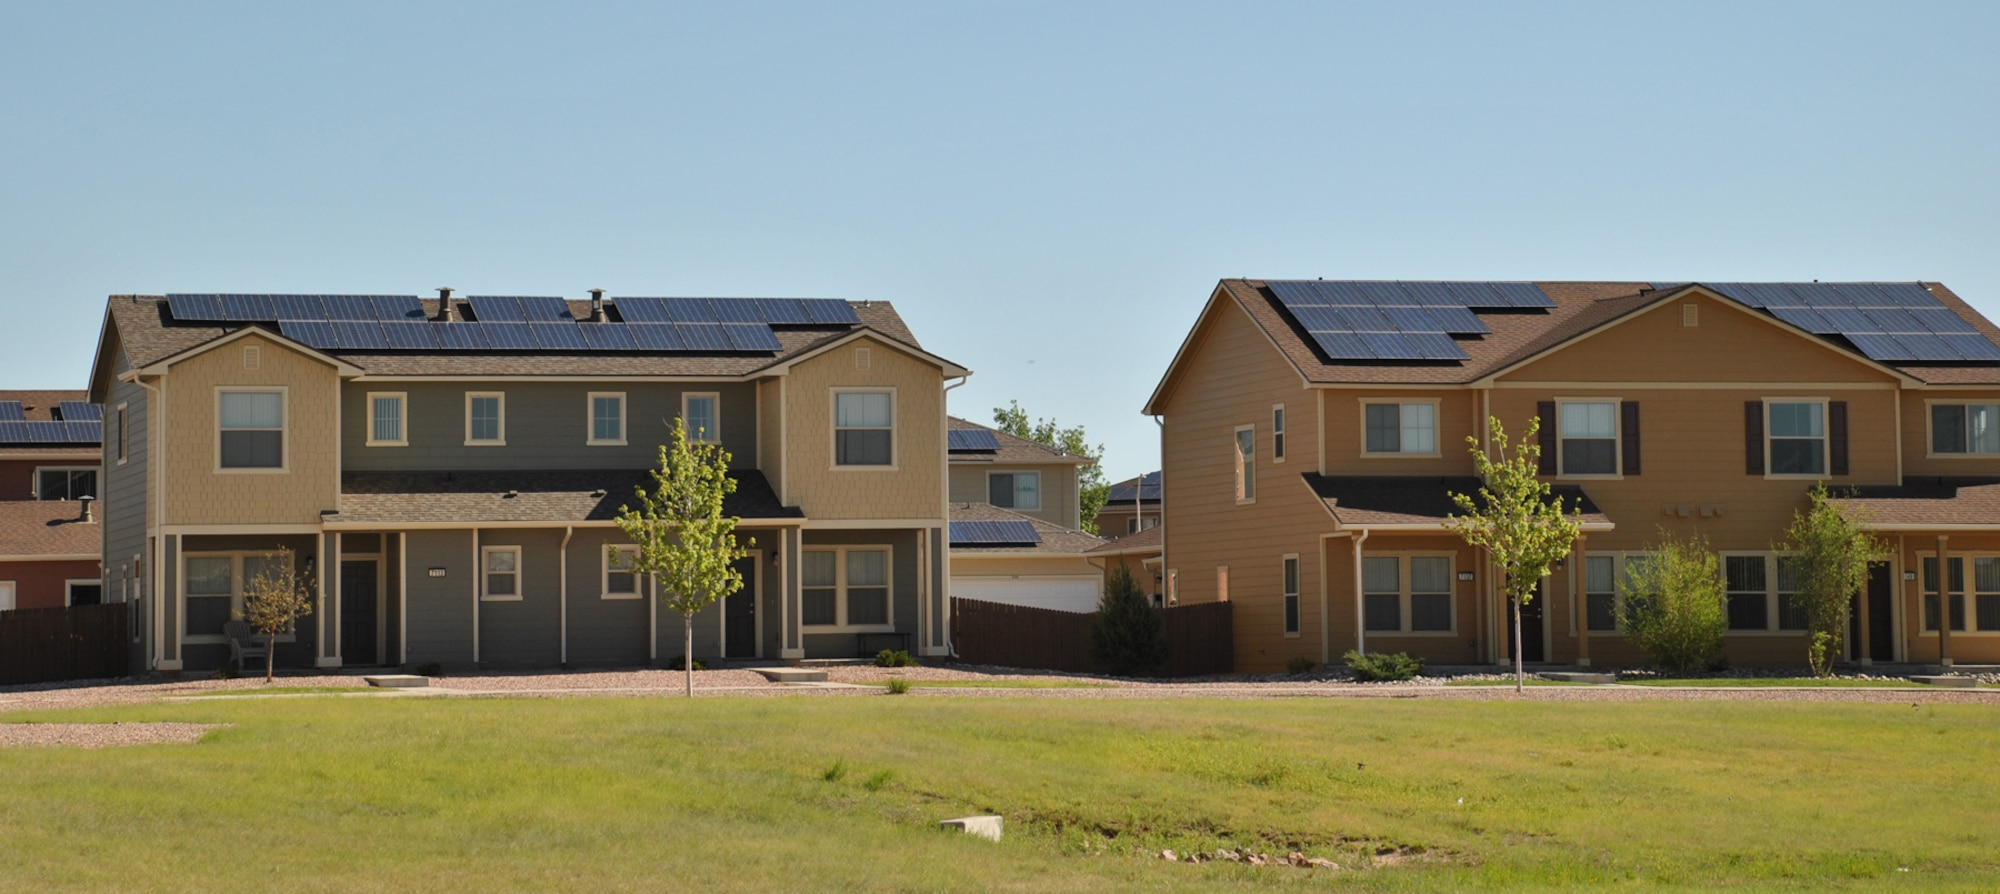 Duplex housing at Peterson Air Force Base, Colorado, features rooftop solar panels. The homes are part of the Air Force Housing Privatization program portfolio, which is managed by the Air Force Civil Engineer Center. (U.S. Air Force photo/Carole Chiles Fuller)